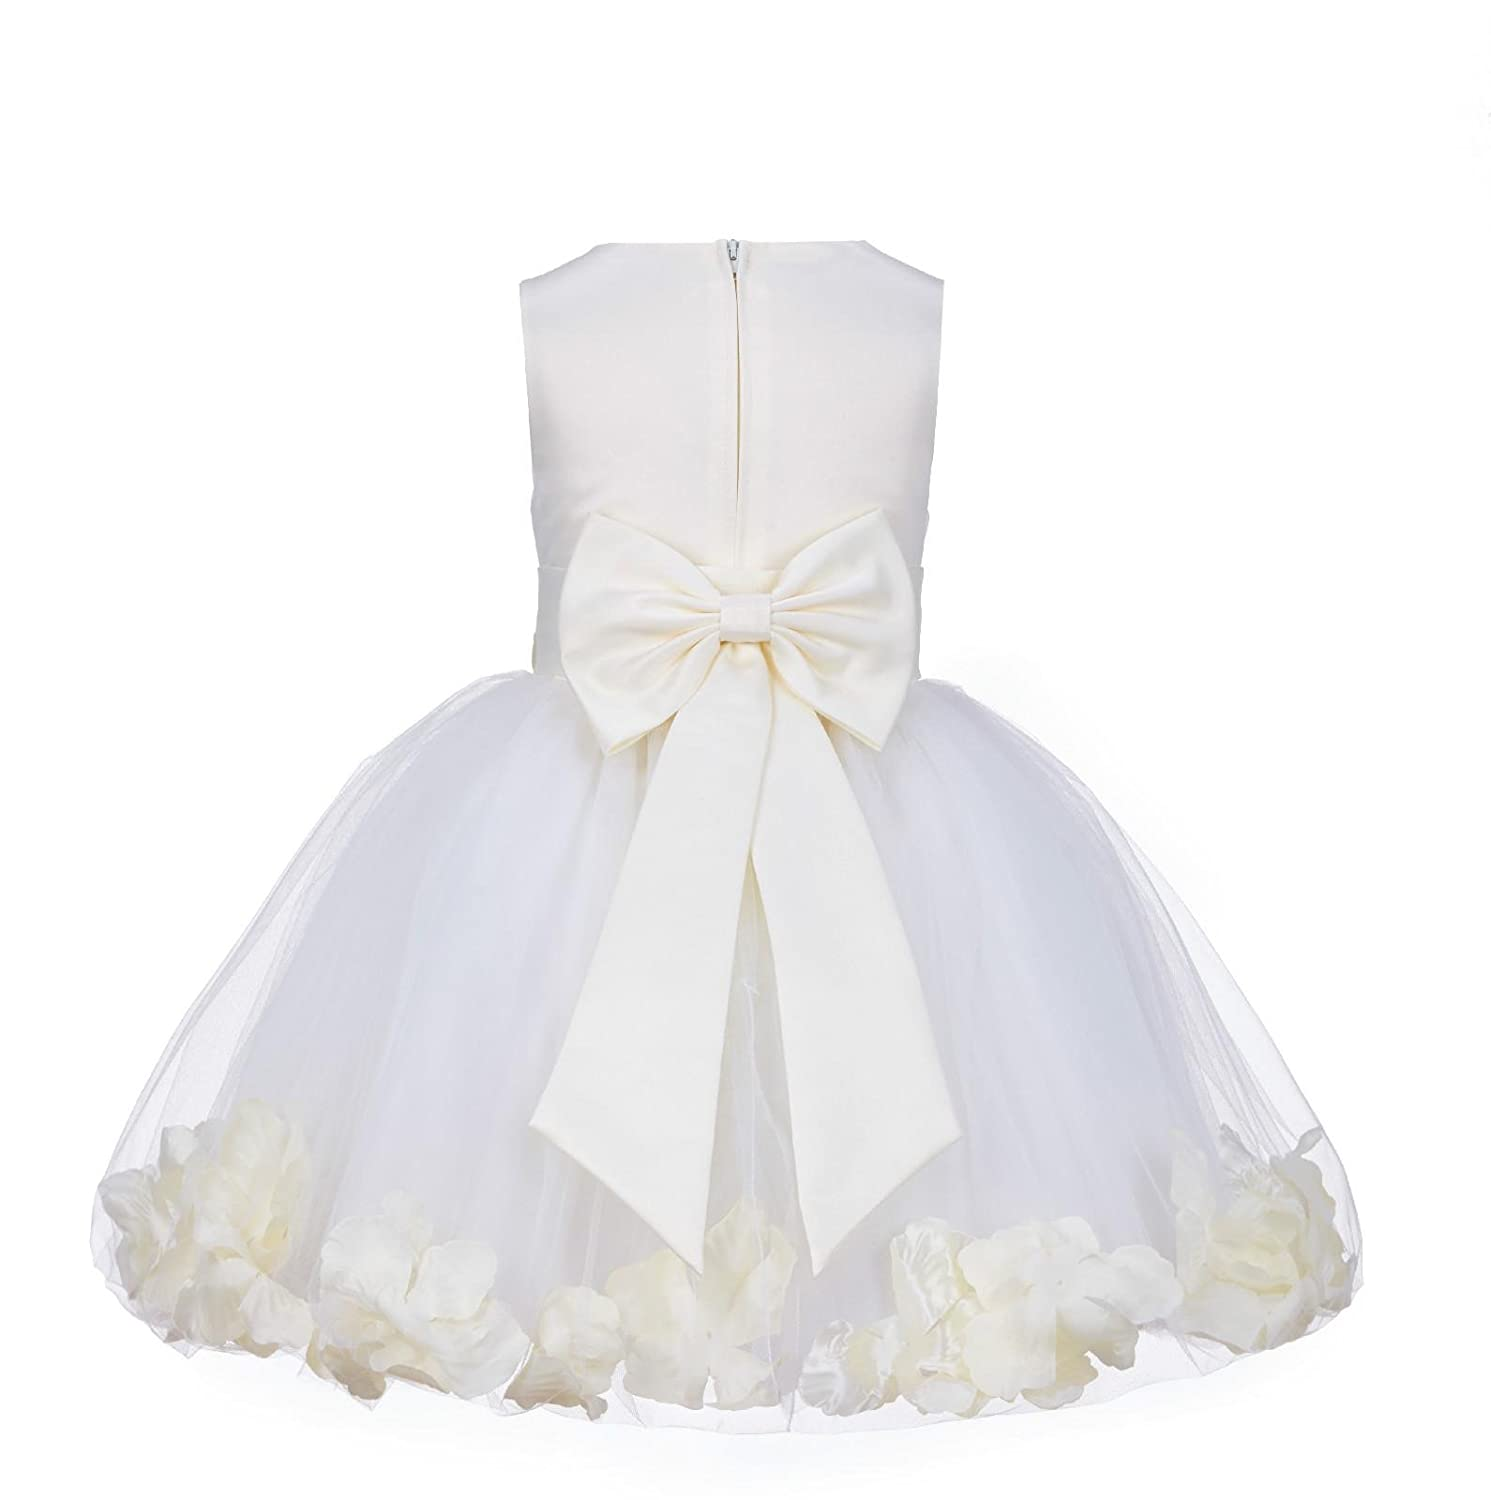 62b70517be5 Amazon.com  Wedding Pageant Rose Petals Flower Girl Dress Tulle Toddler  Bridal Easter Recital Occasions 305NT  Clothing